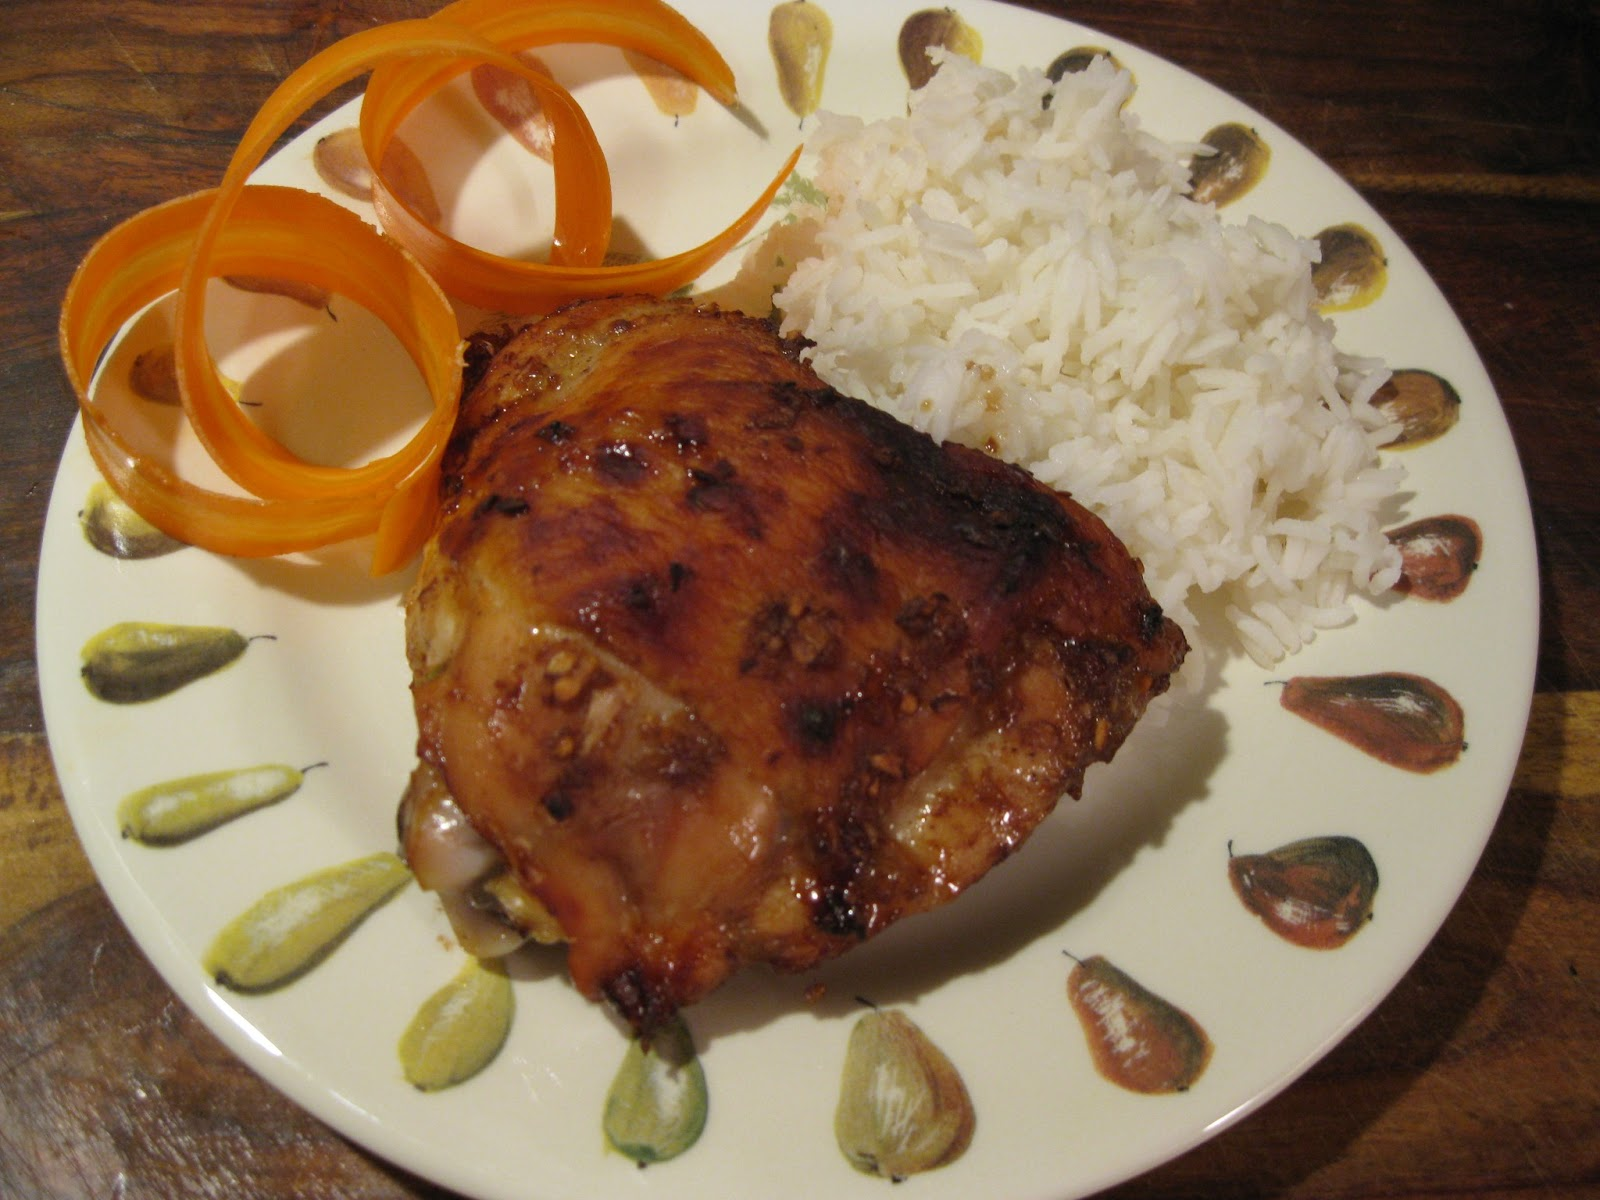 Kristen Kennedy - May Way, Every Day!: Five Spice Roasted Chicken